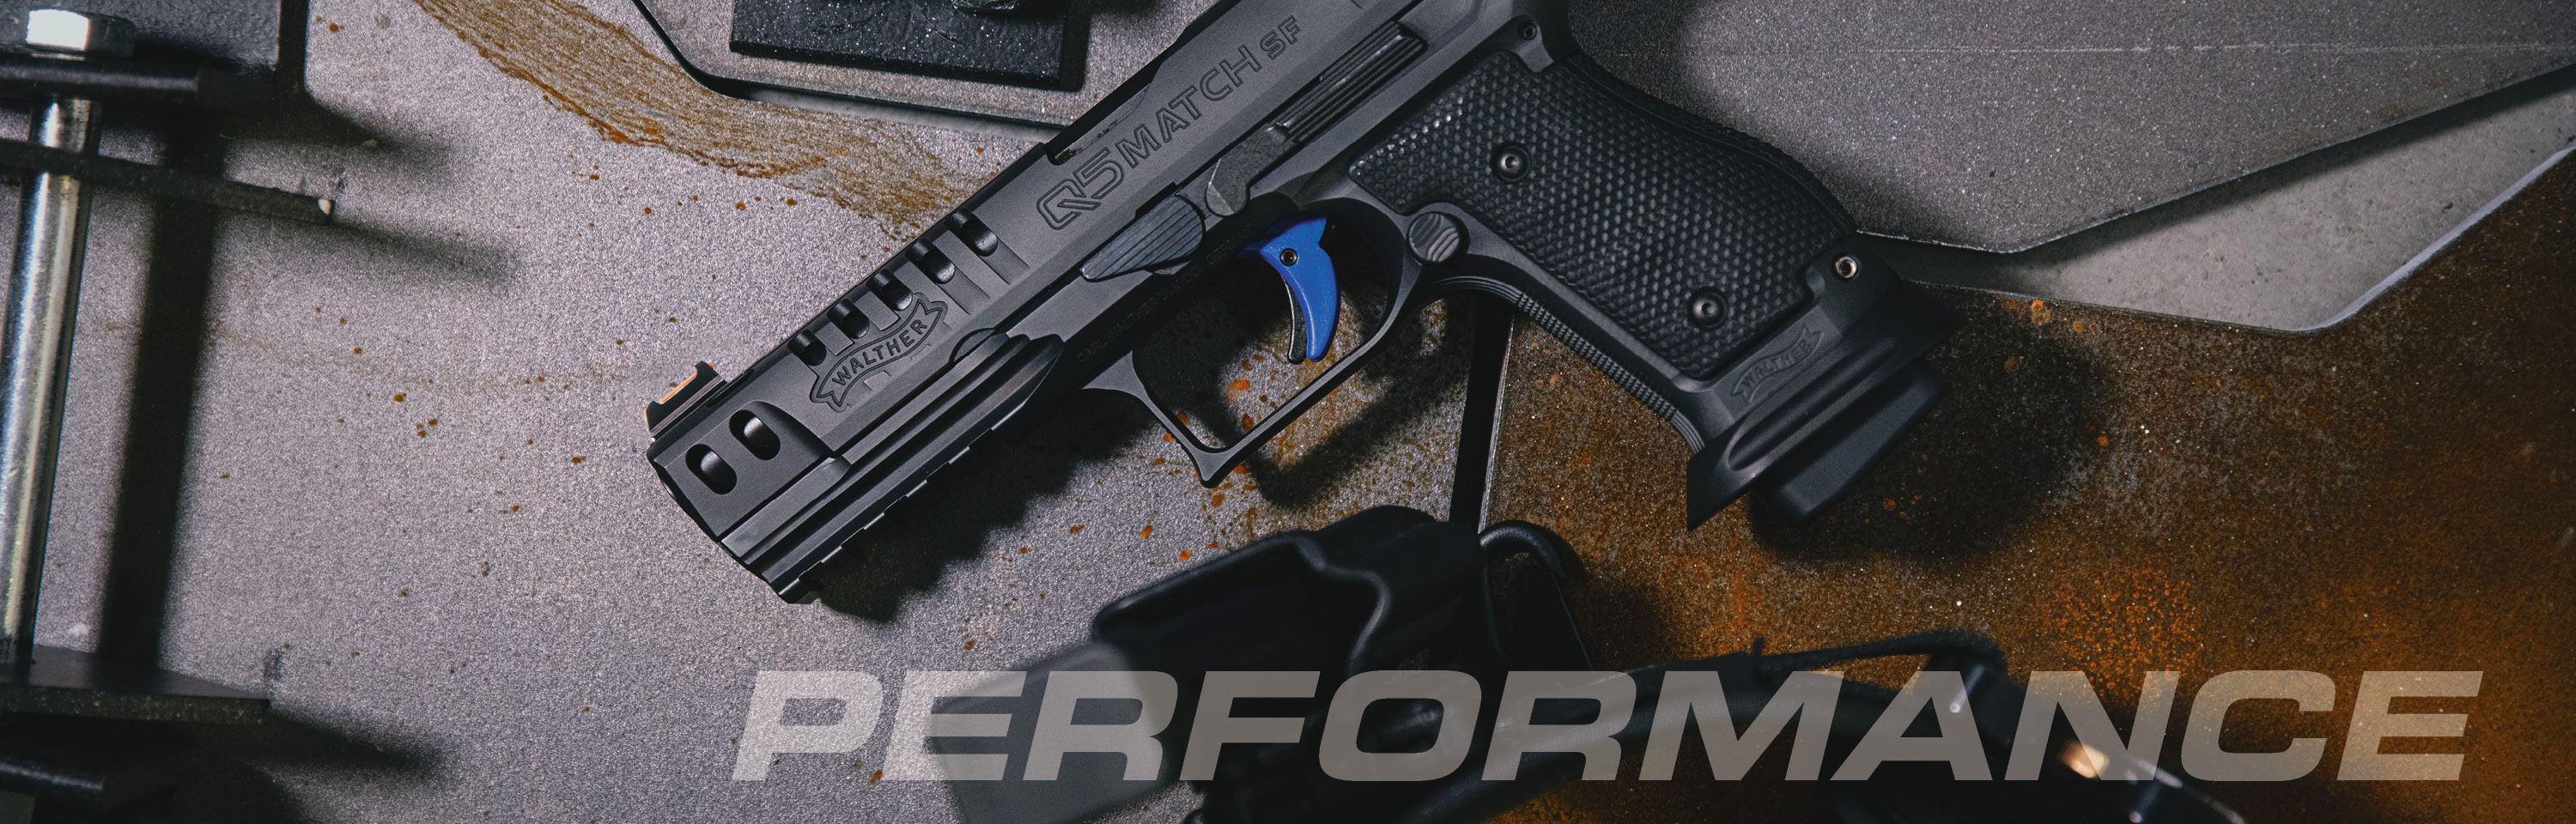 Walther Arms Performance